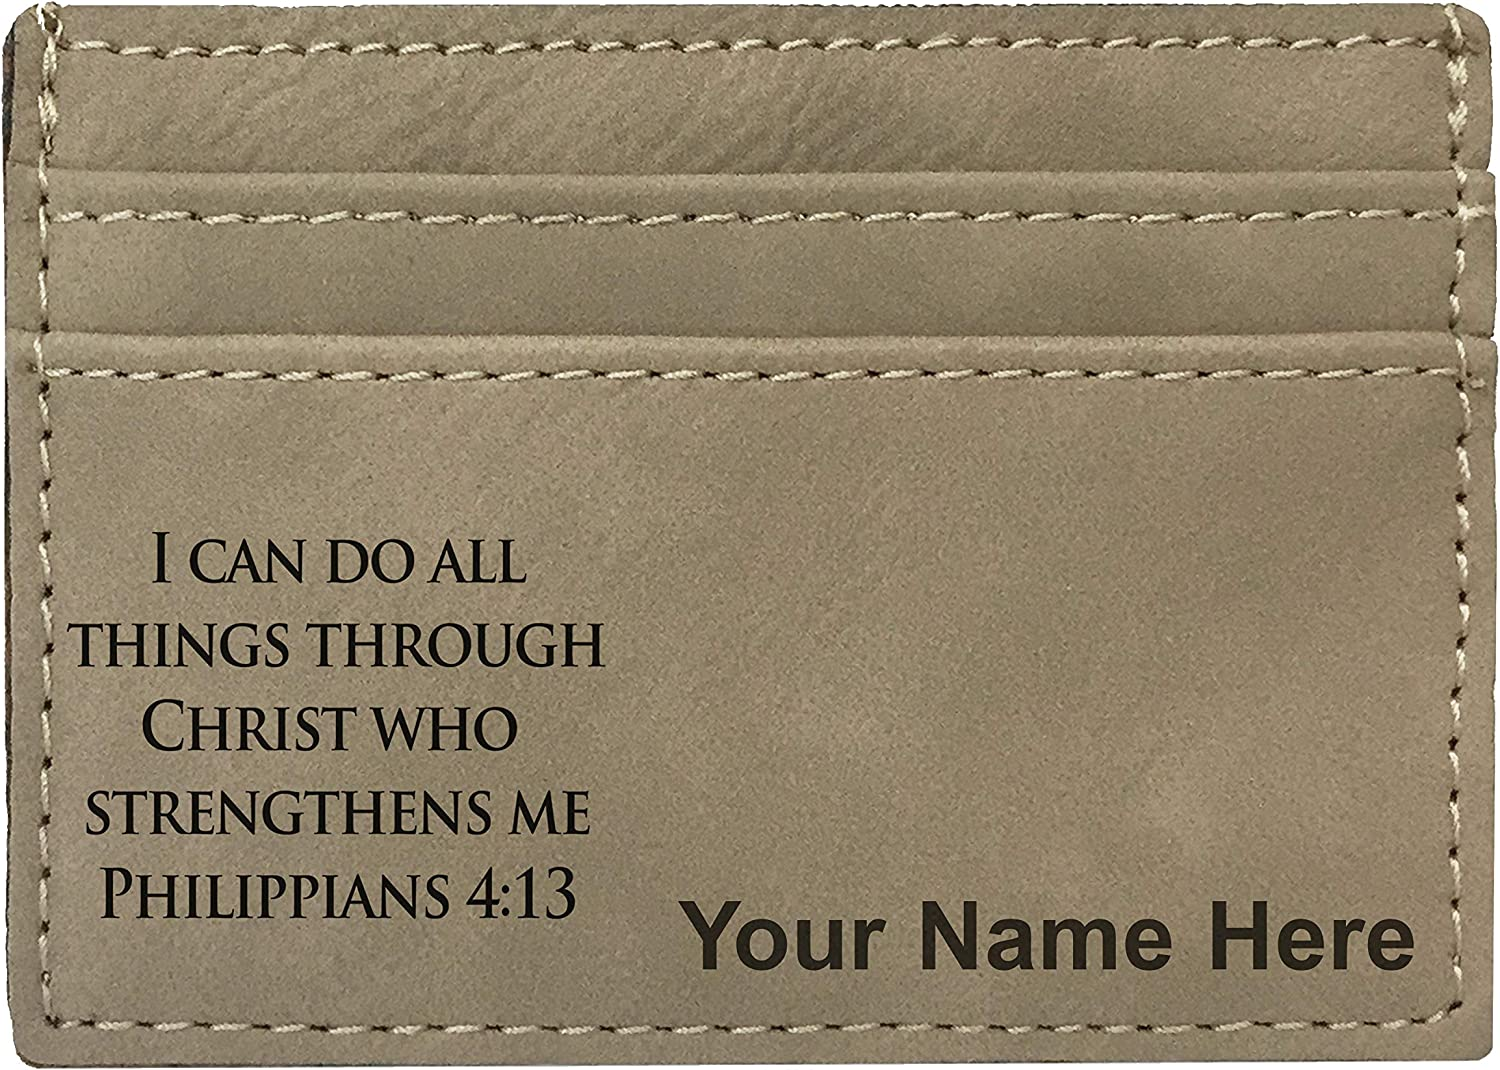 Money Clip Wallet, Bible Verse Philippians 4:13, Personalized Engraving Included